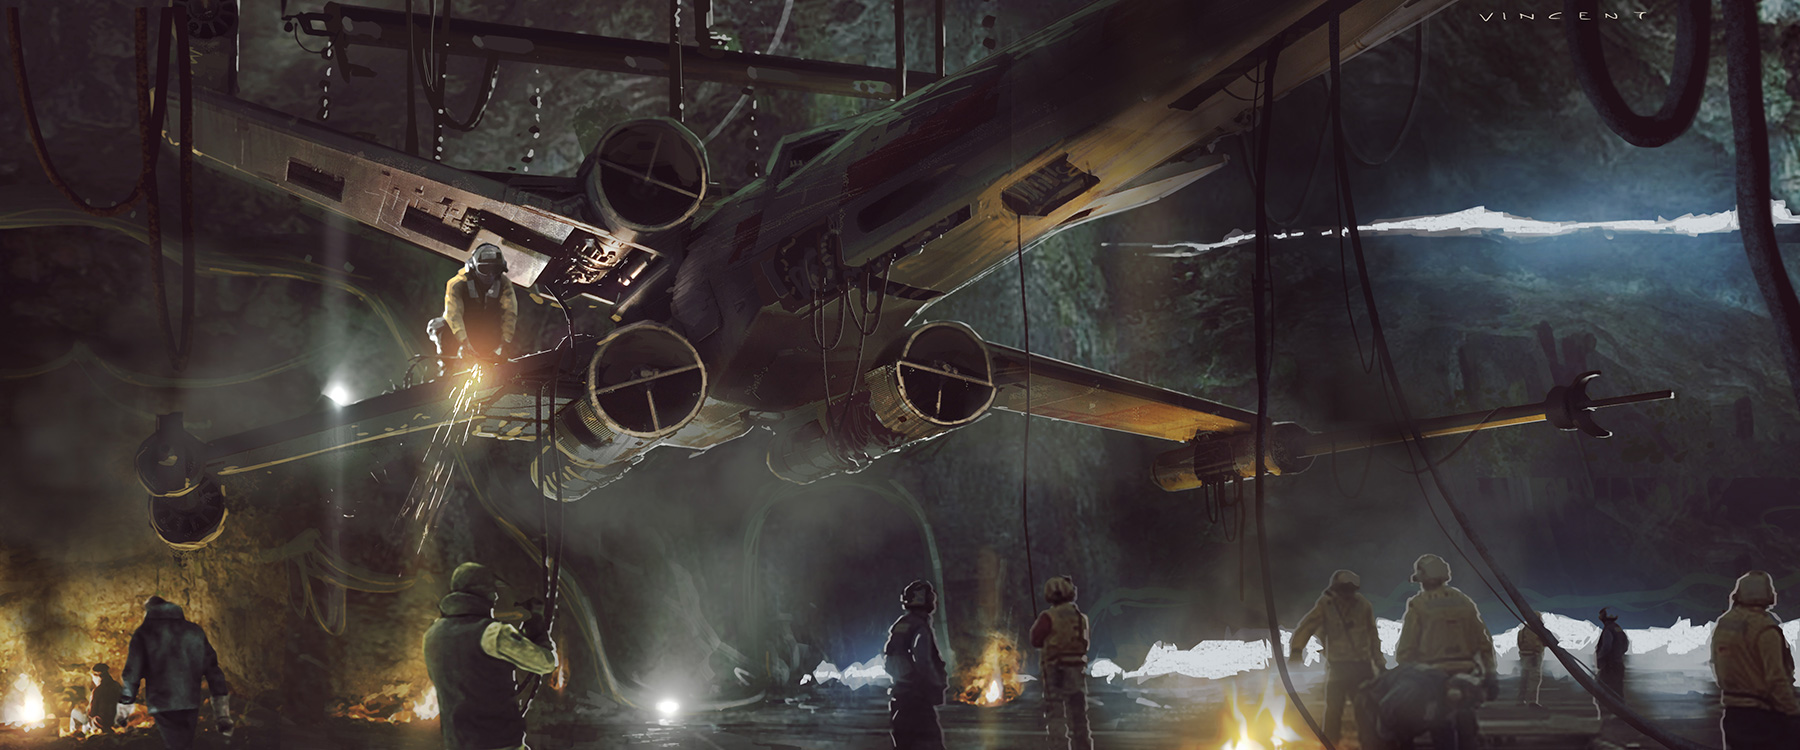 Rogue One: A Star Wars Story Concept Art by Vincent Jenkins